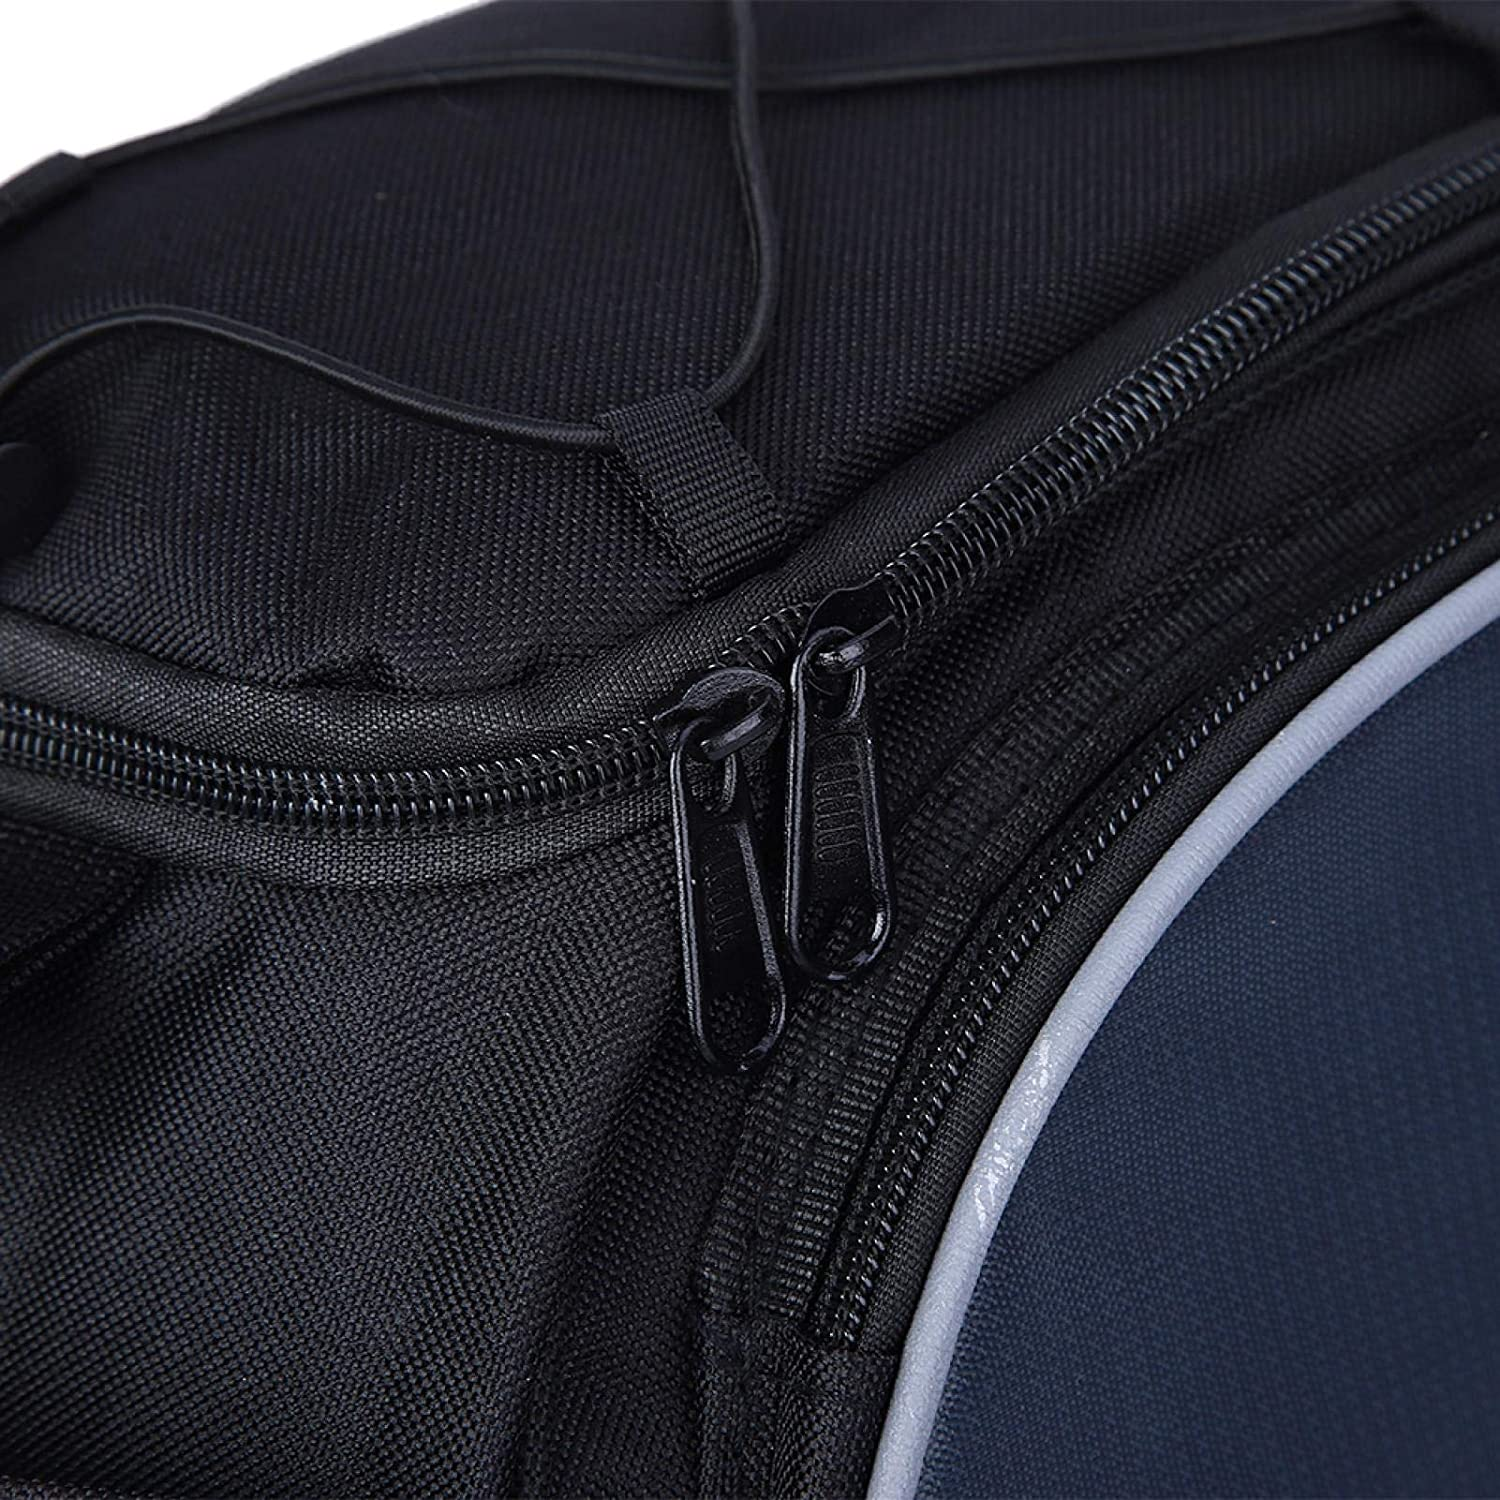 5 ☆ very popular Okuyonic Max 44% OFF Rain Cover Dust-Proof Backpack Rear Seat Trunk Pan Bike